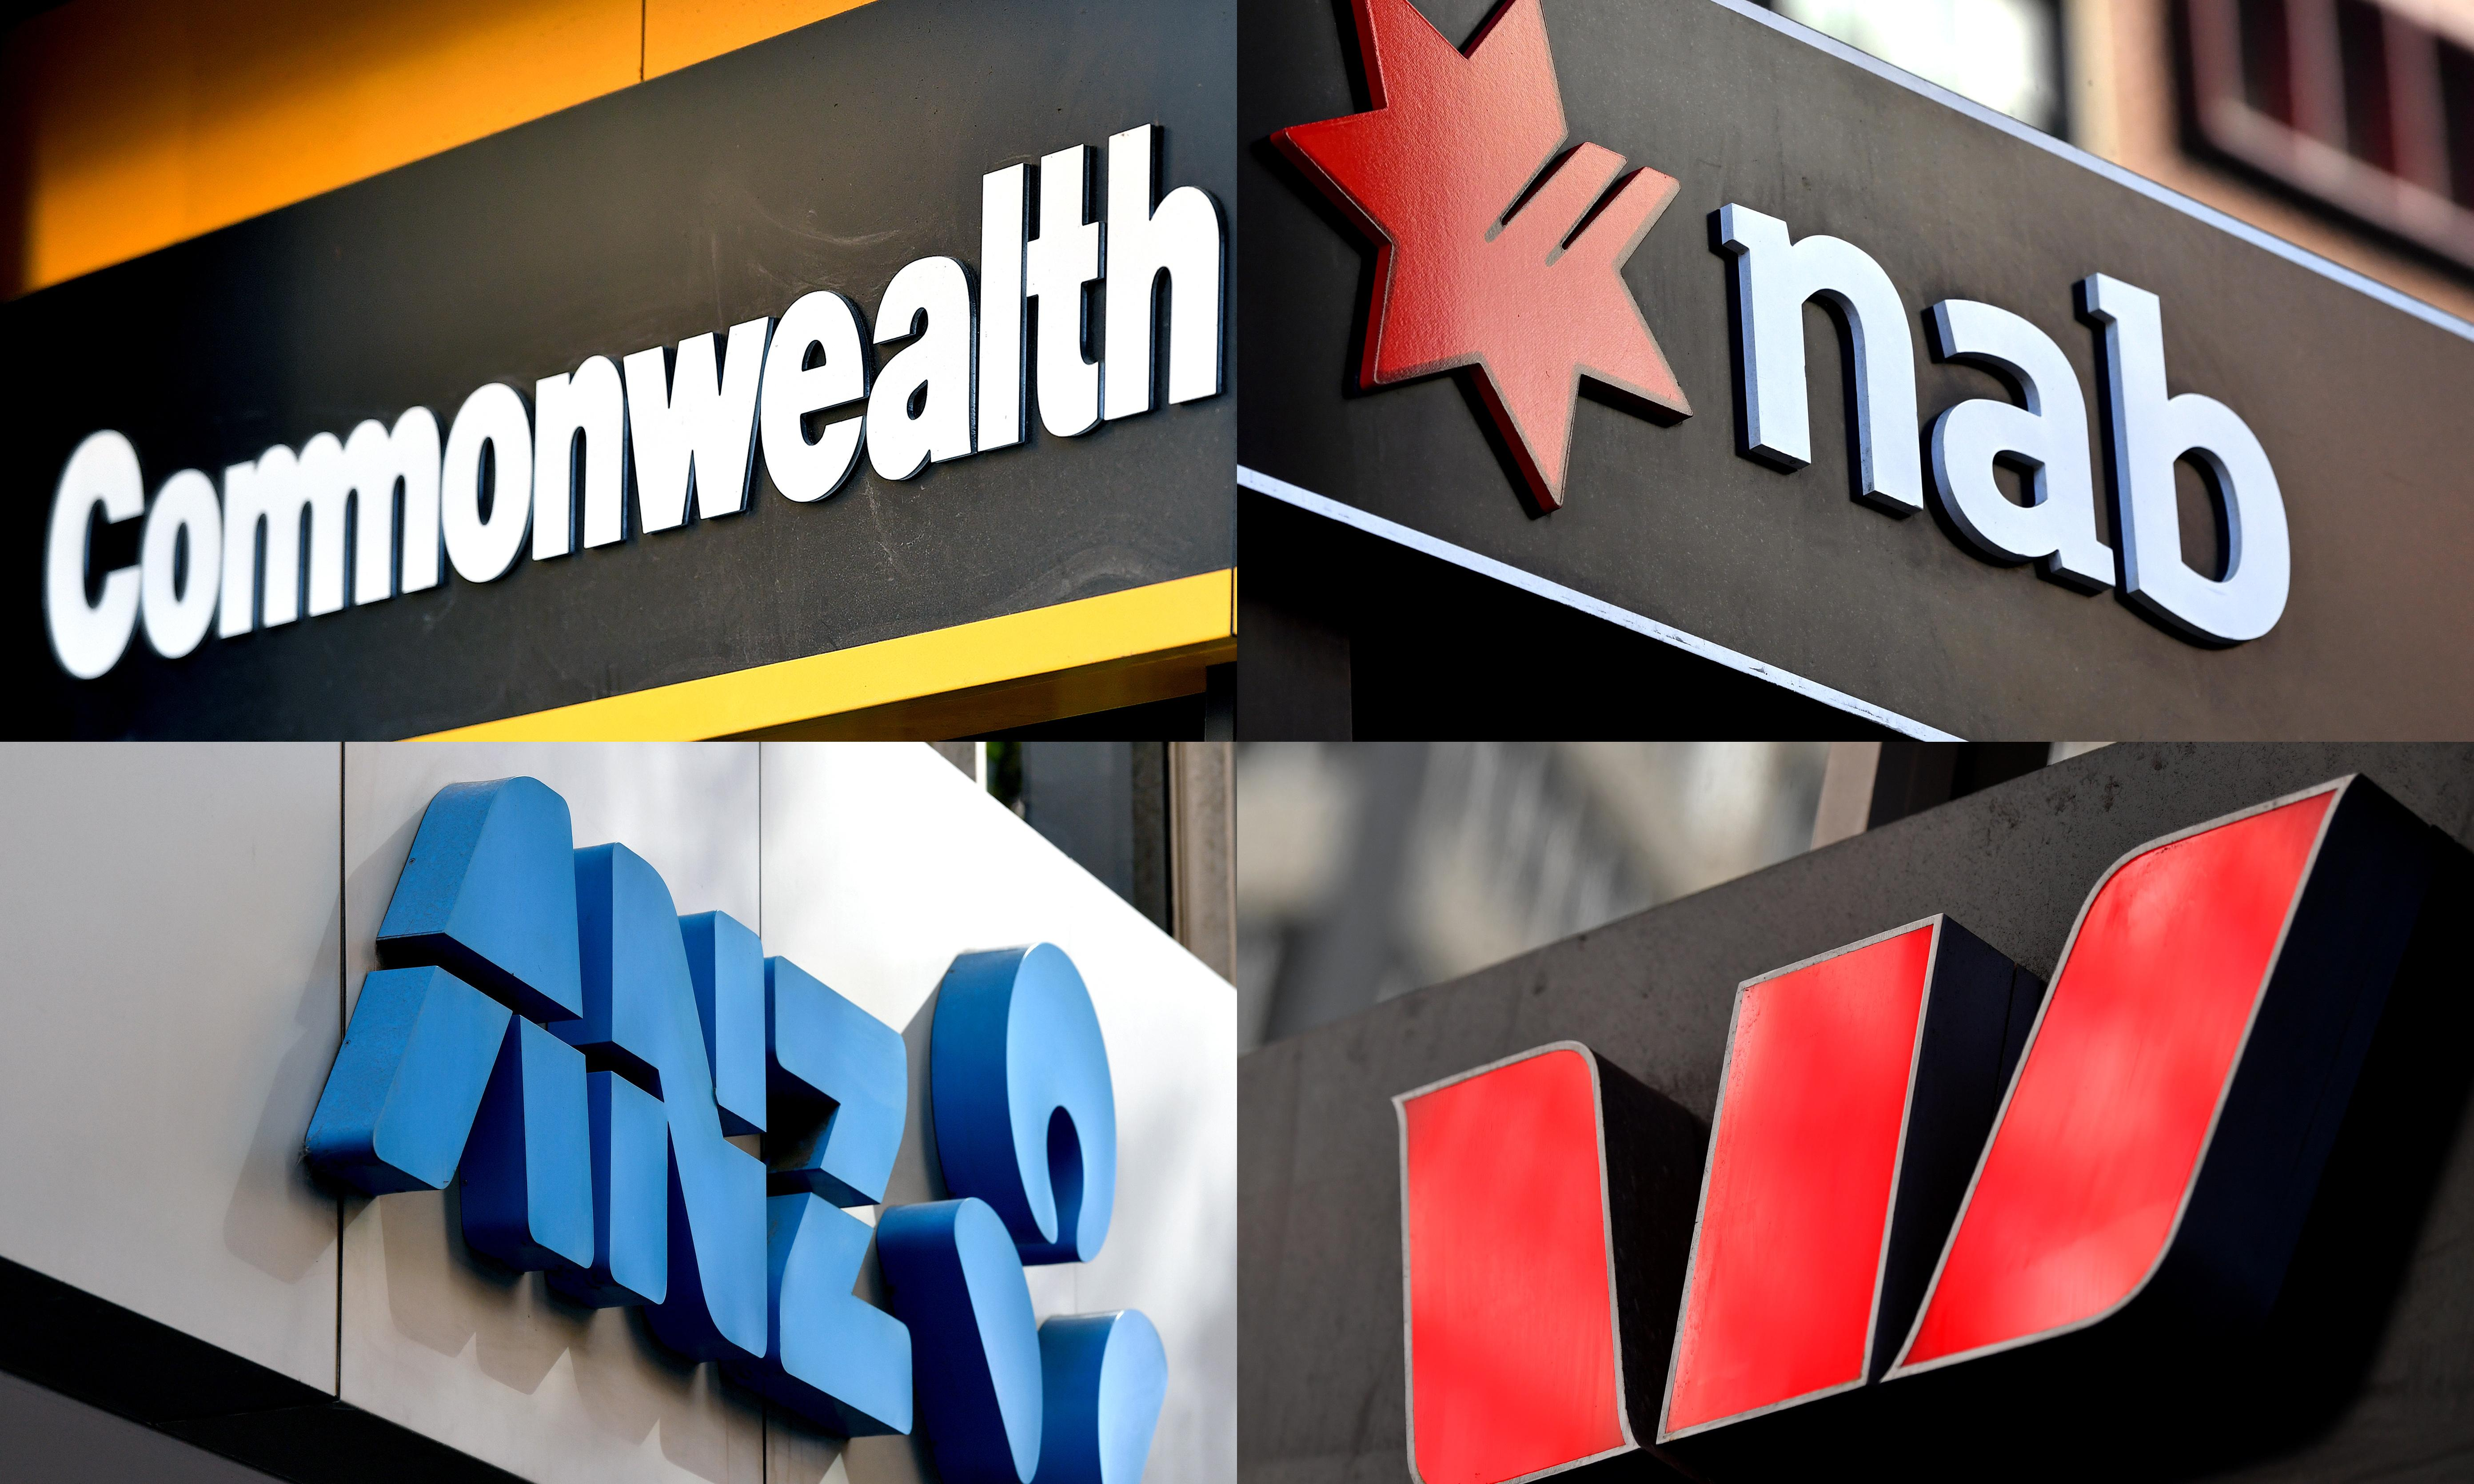 Competition watchdog to examine banks' failure to pass on full interest rate cuts